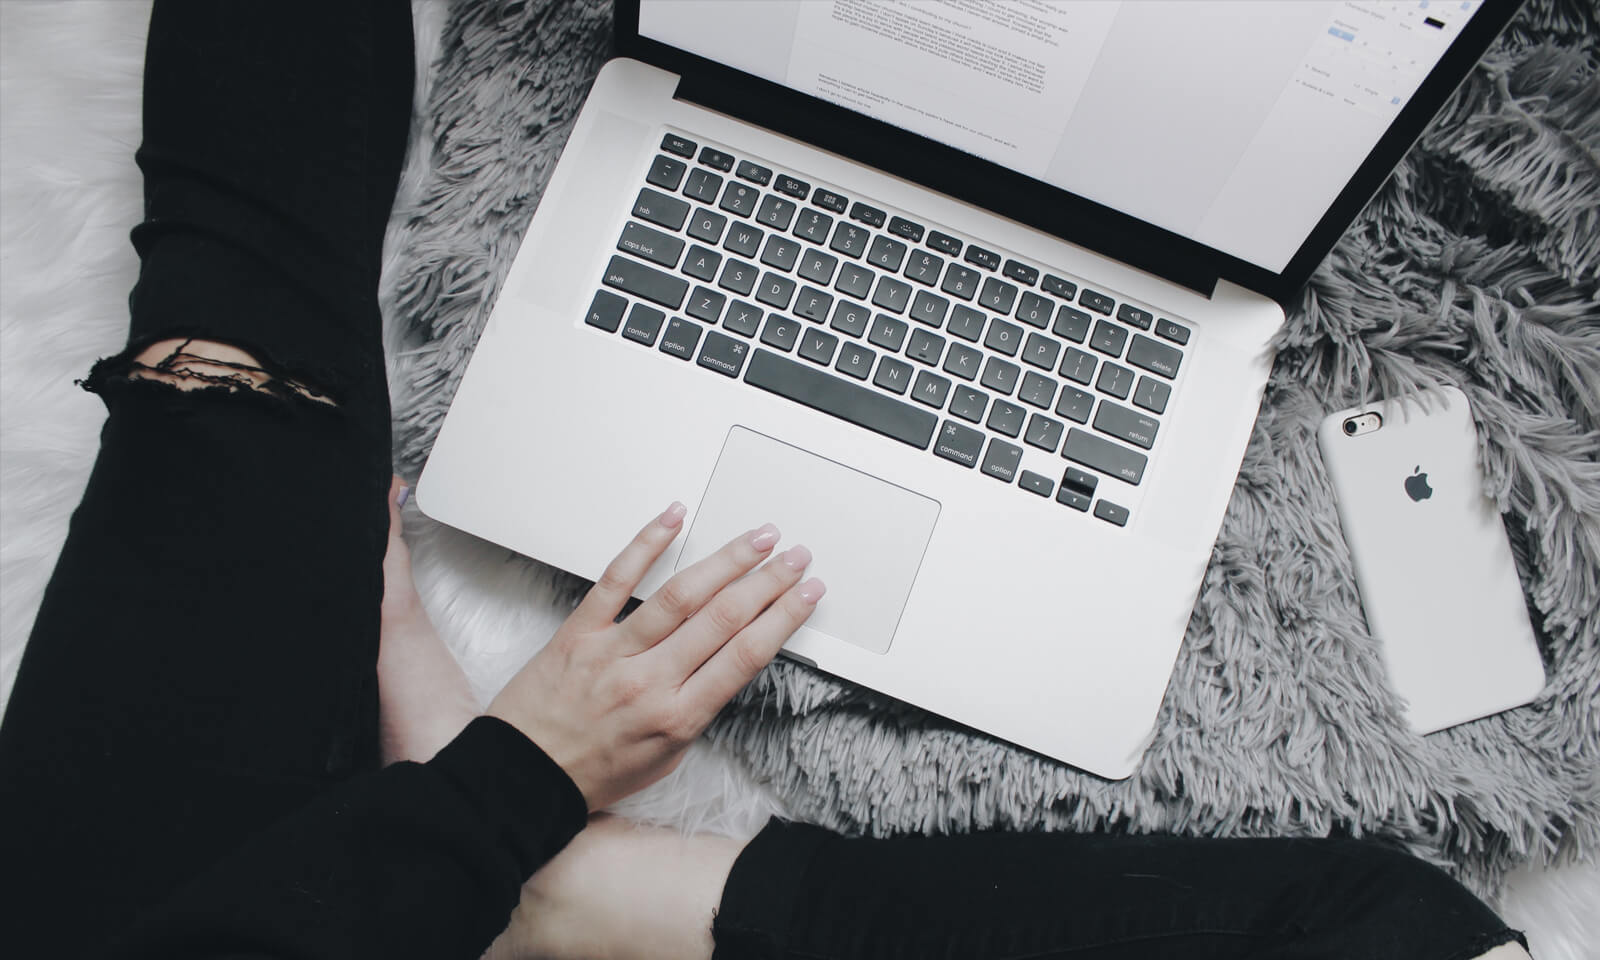 On the internet, an endless source of industry insights, news and tips are at your fingertips – but how do you know which are worth reading? Here are the top business blogs every entrepreneur should stay on top of.